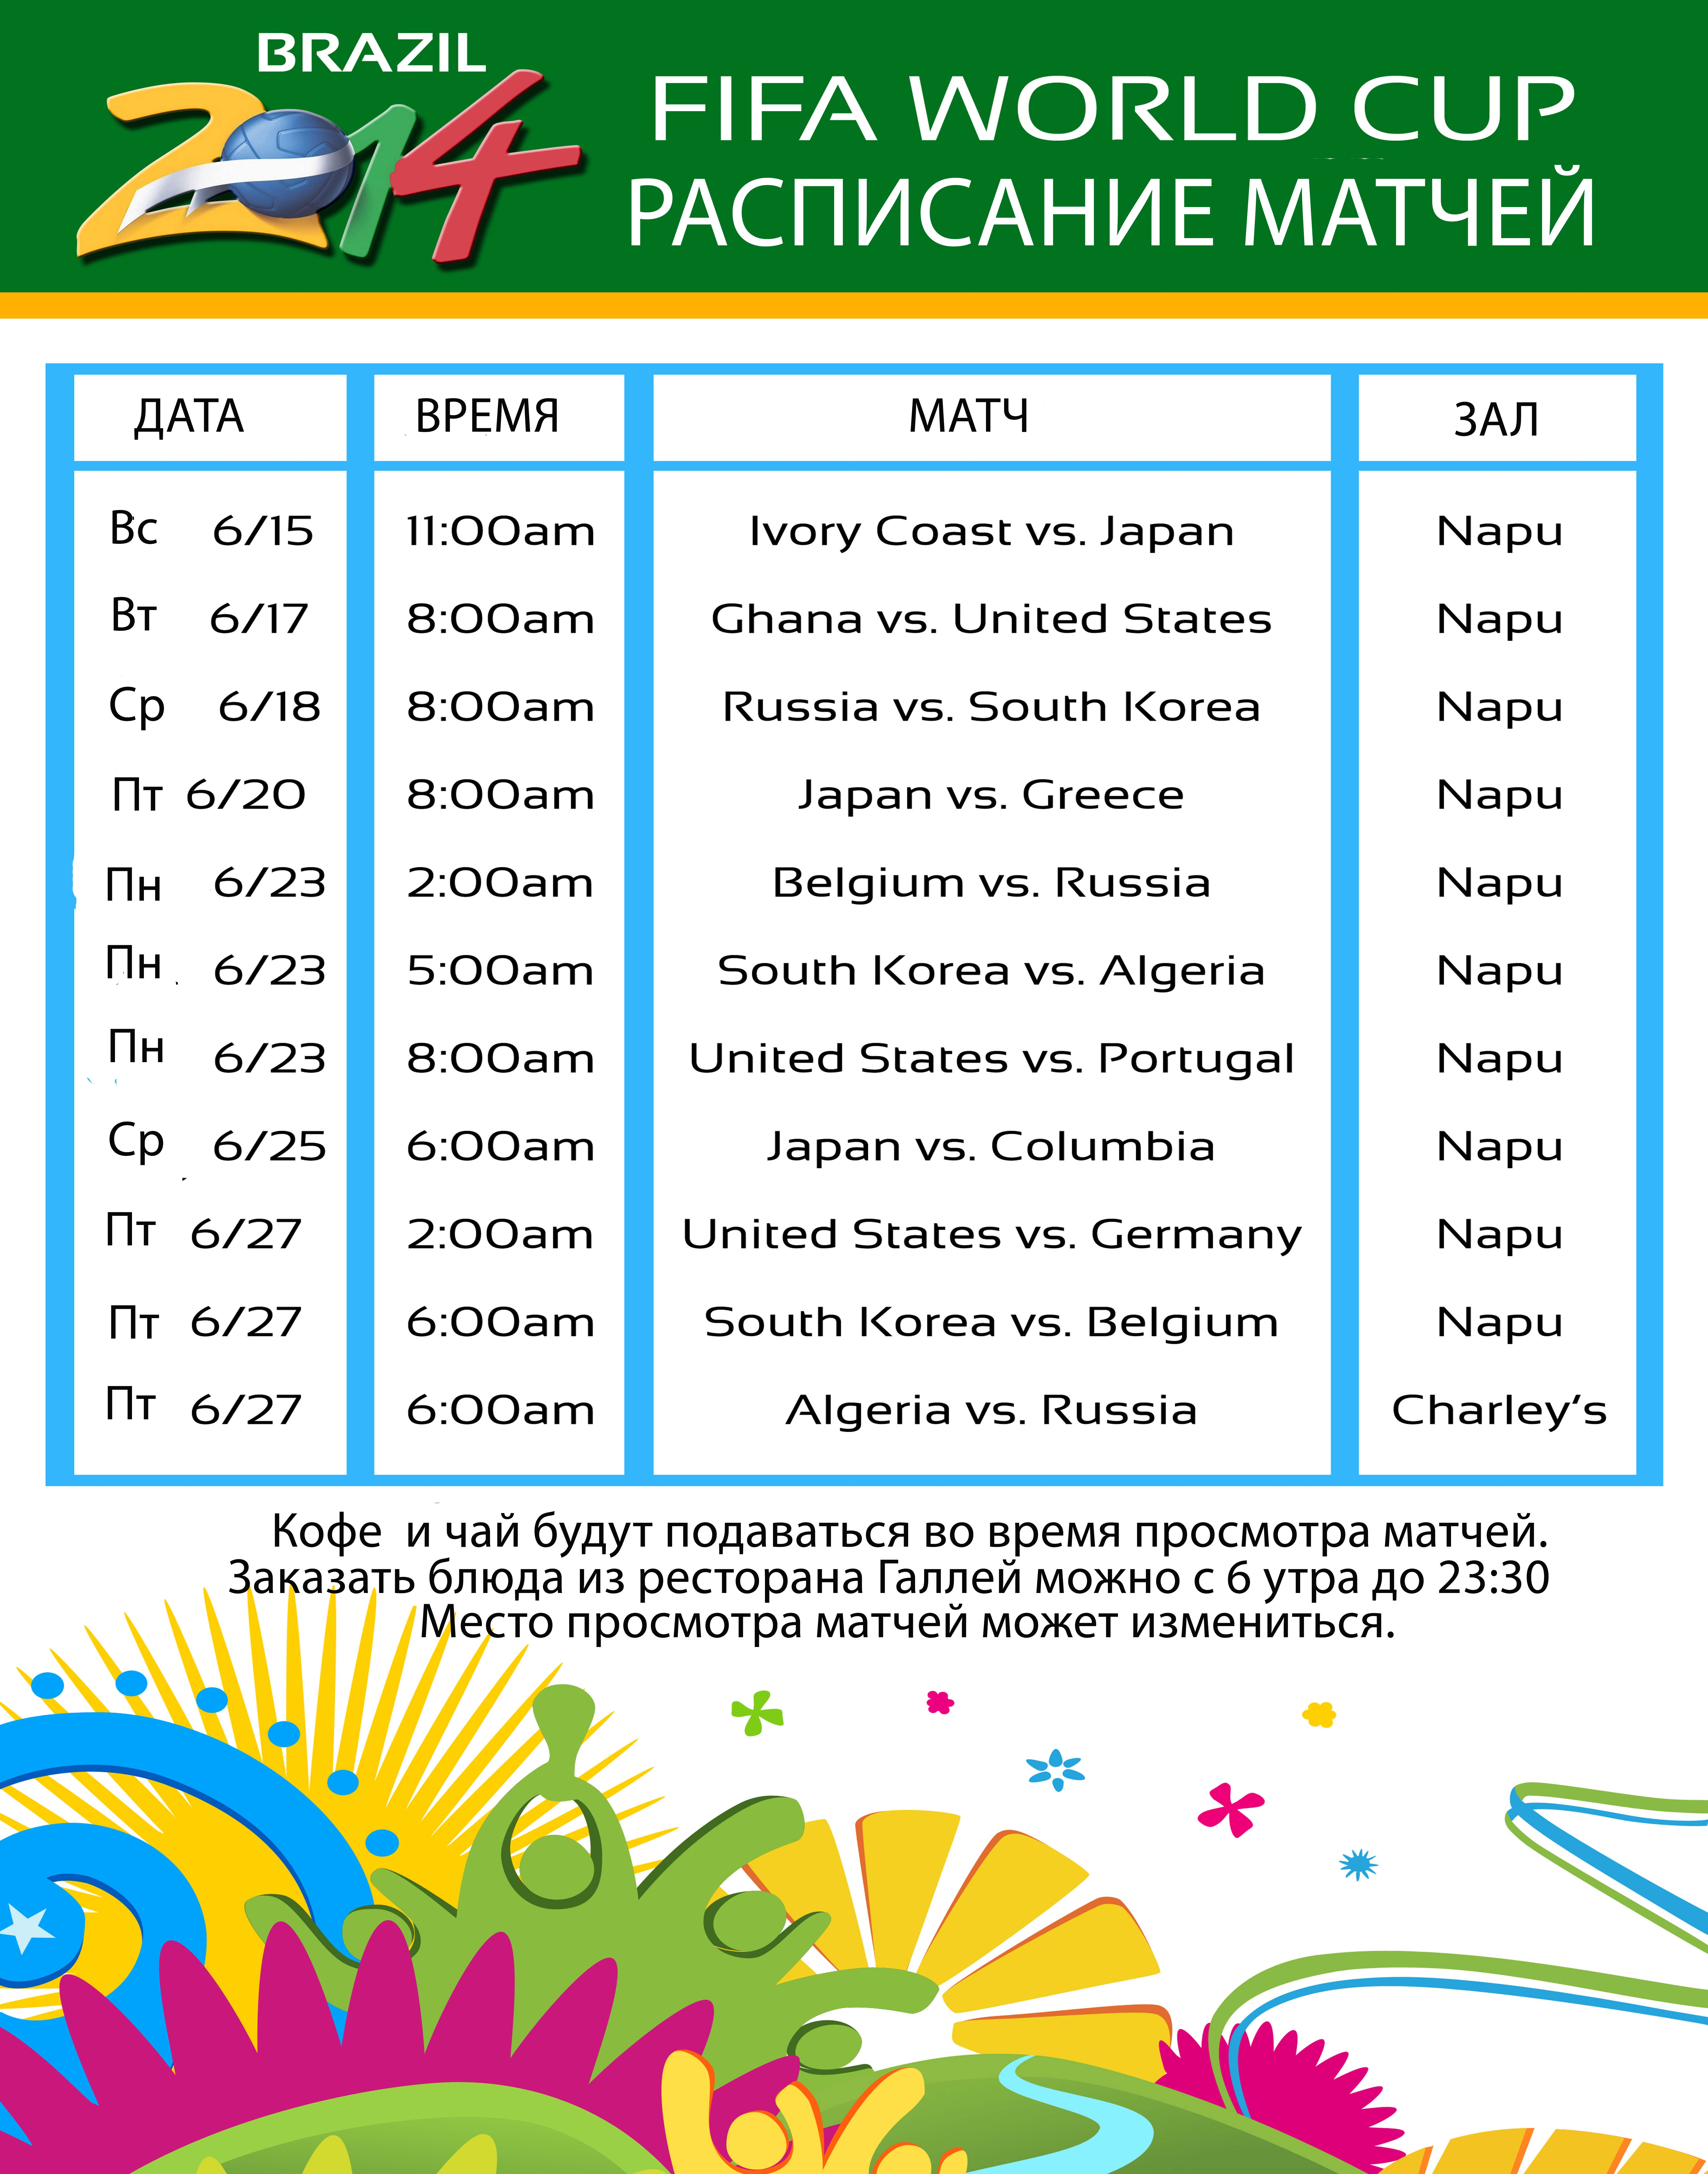 Schedule of matches World Cup 2014